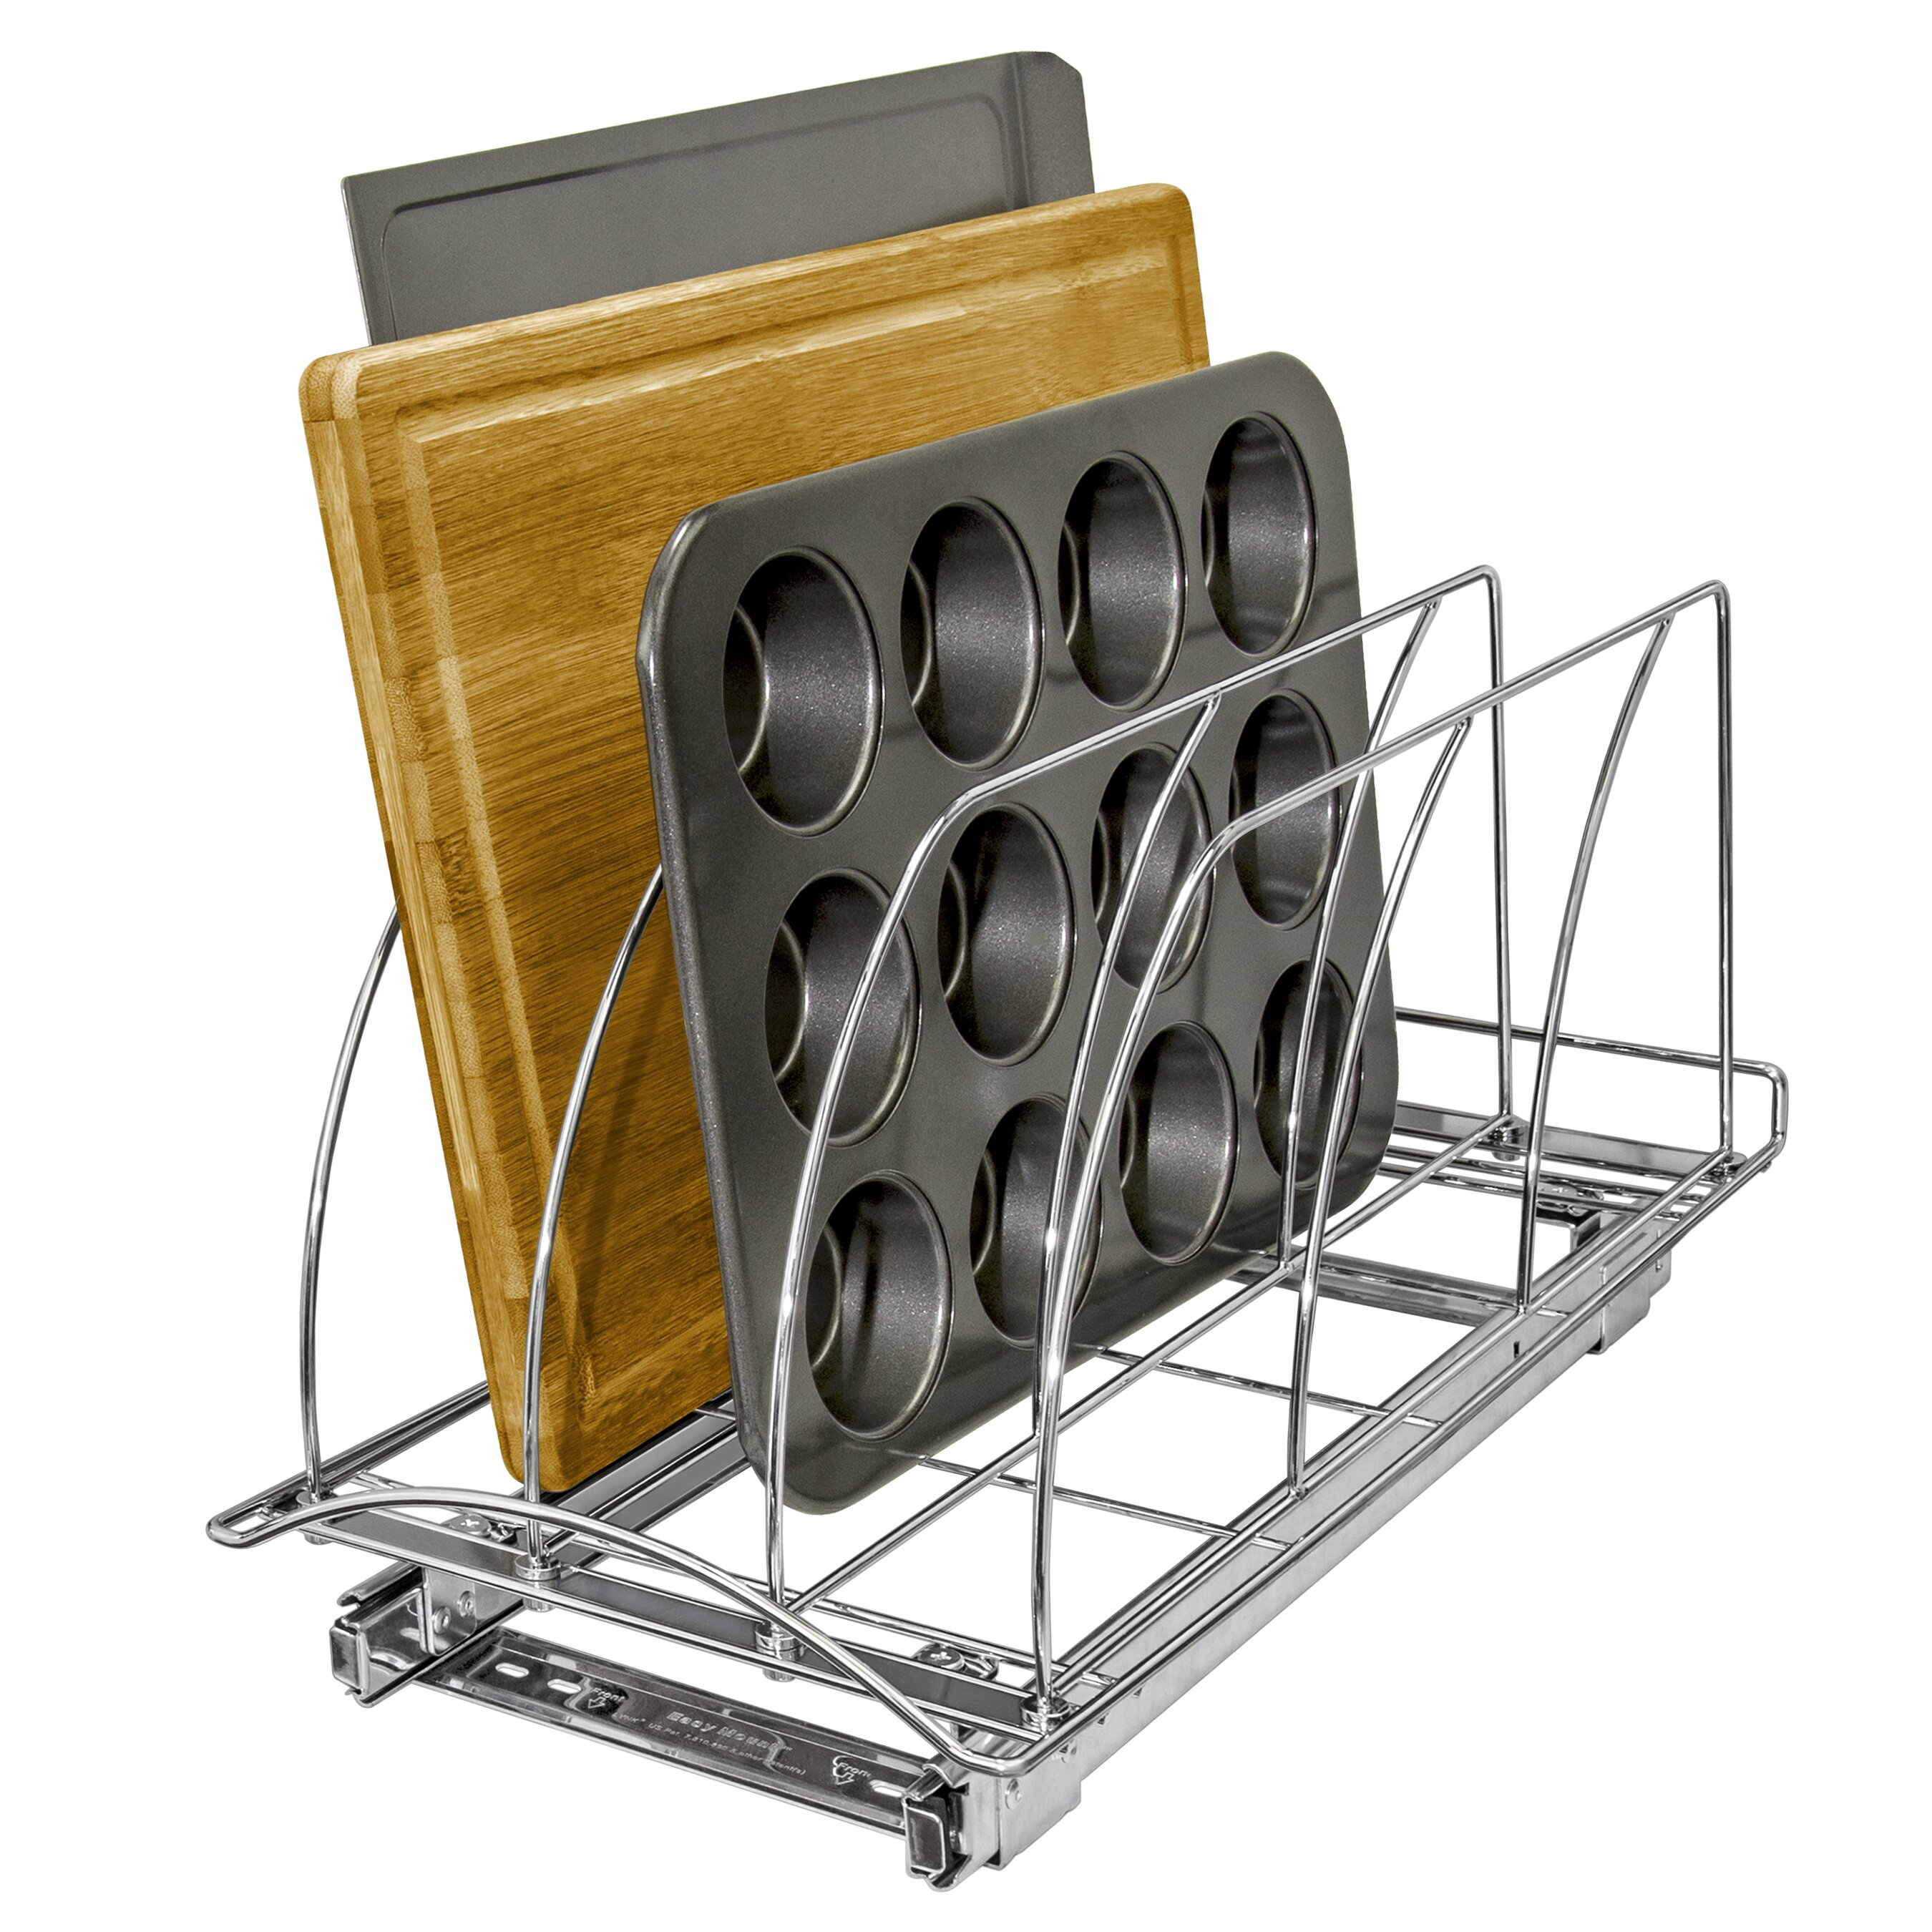 Kitchen Cabinet Pull Out Organizer: Lynk Roll Out Cutting Board, Bakeware, And Tray Organizer